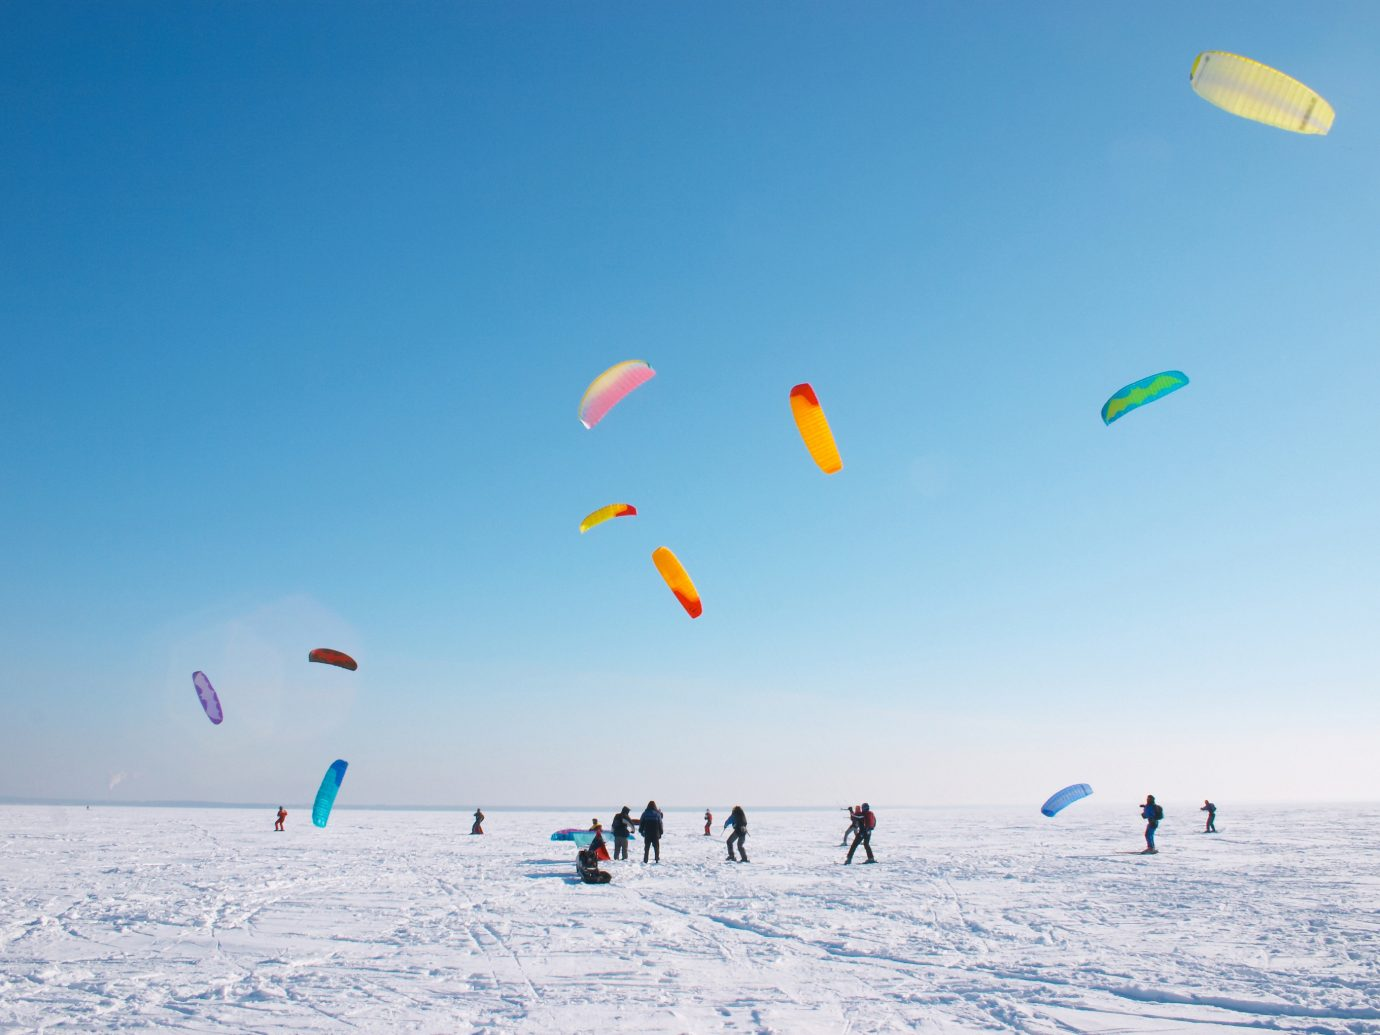 Offbeat sky sports outdoor windsports people toy atmosphere of earth kite sports extreme sport snowkiting kitesurfing wind surfing equipment and supplies several colored